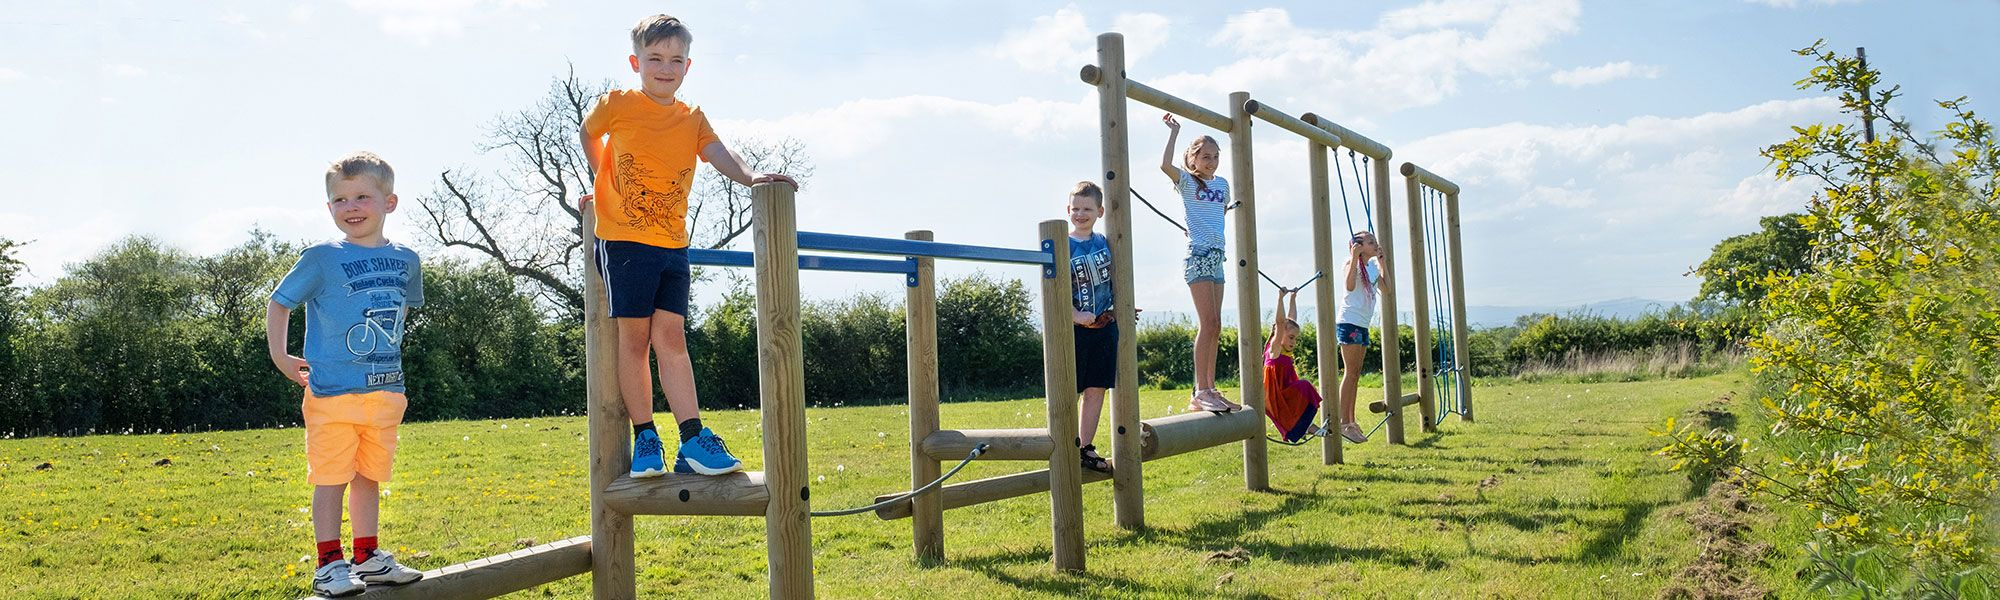 Children on climbing frame at outdoor park in North Wales